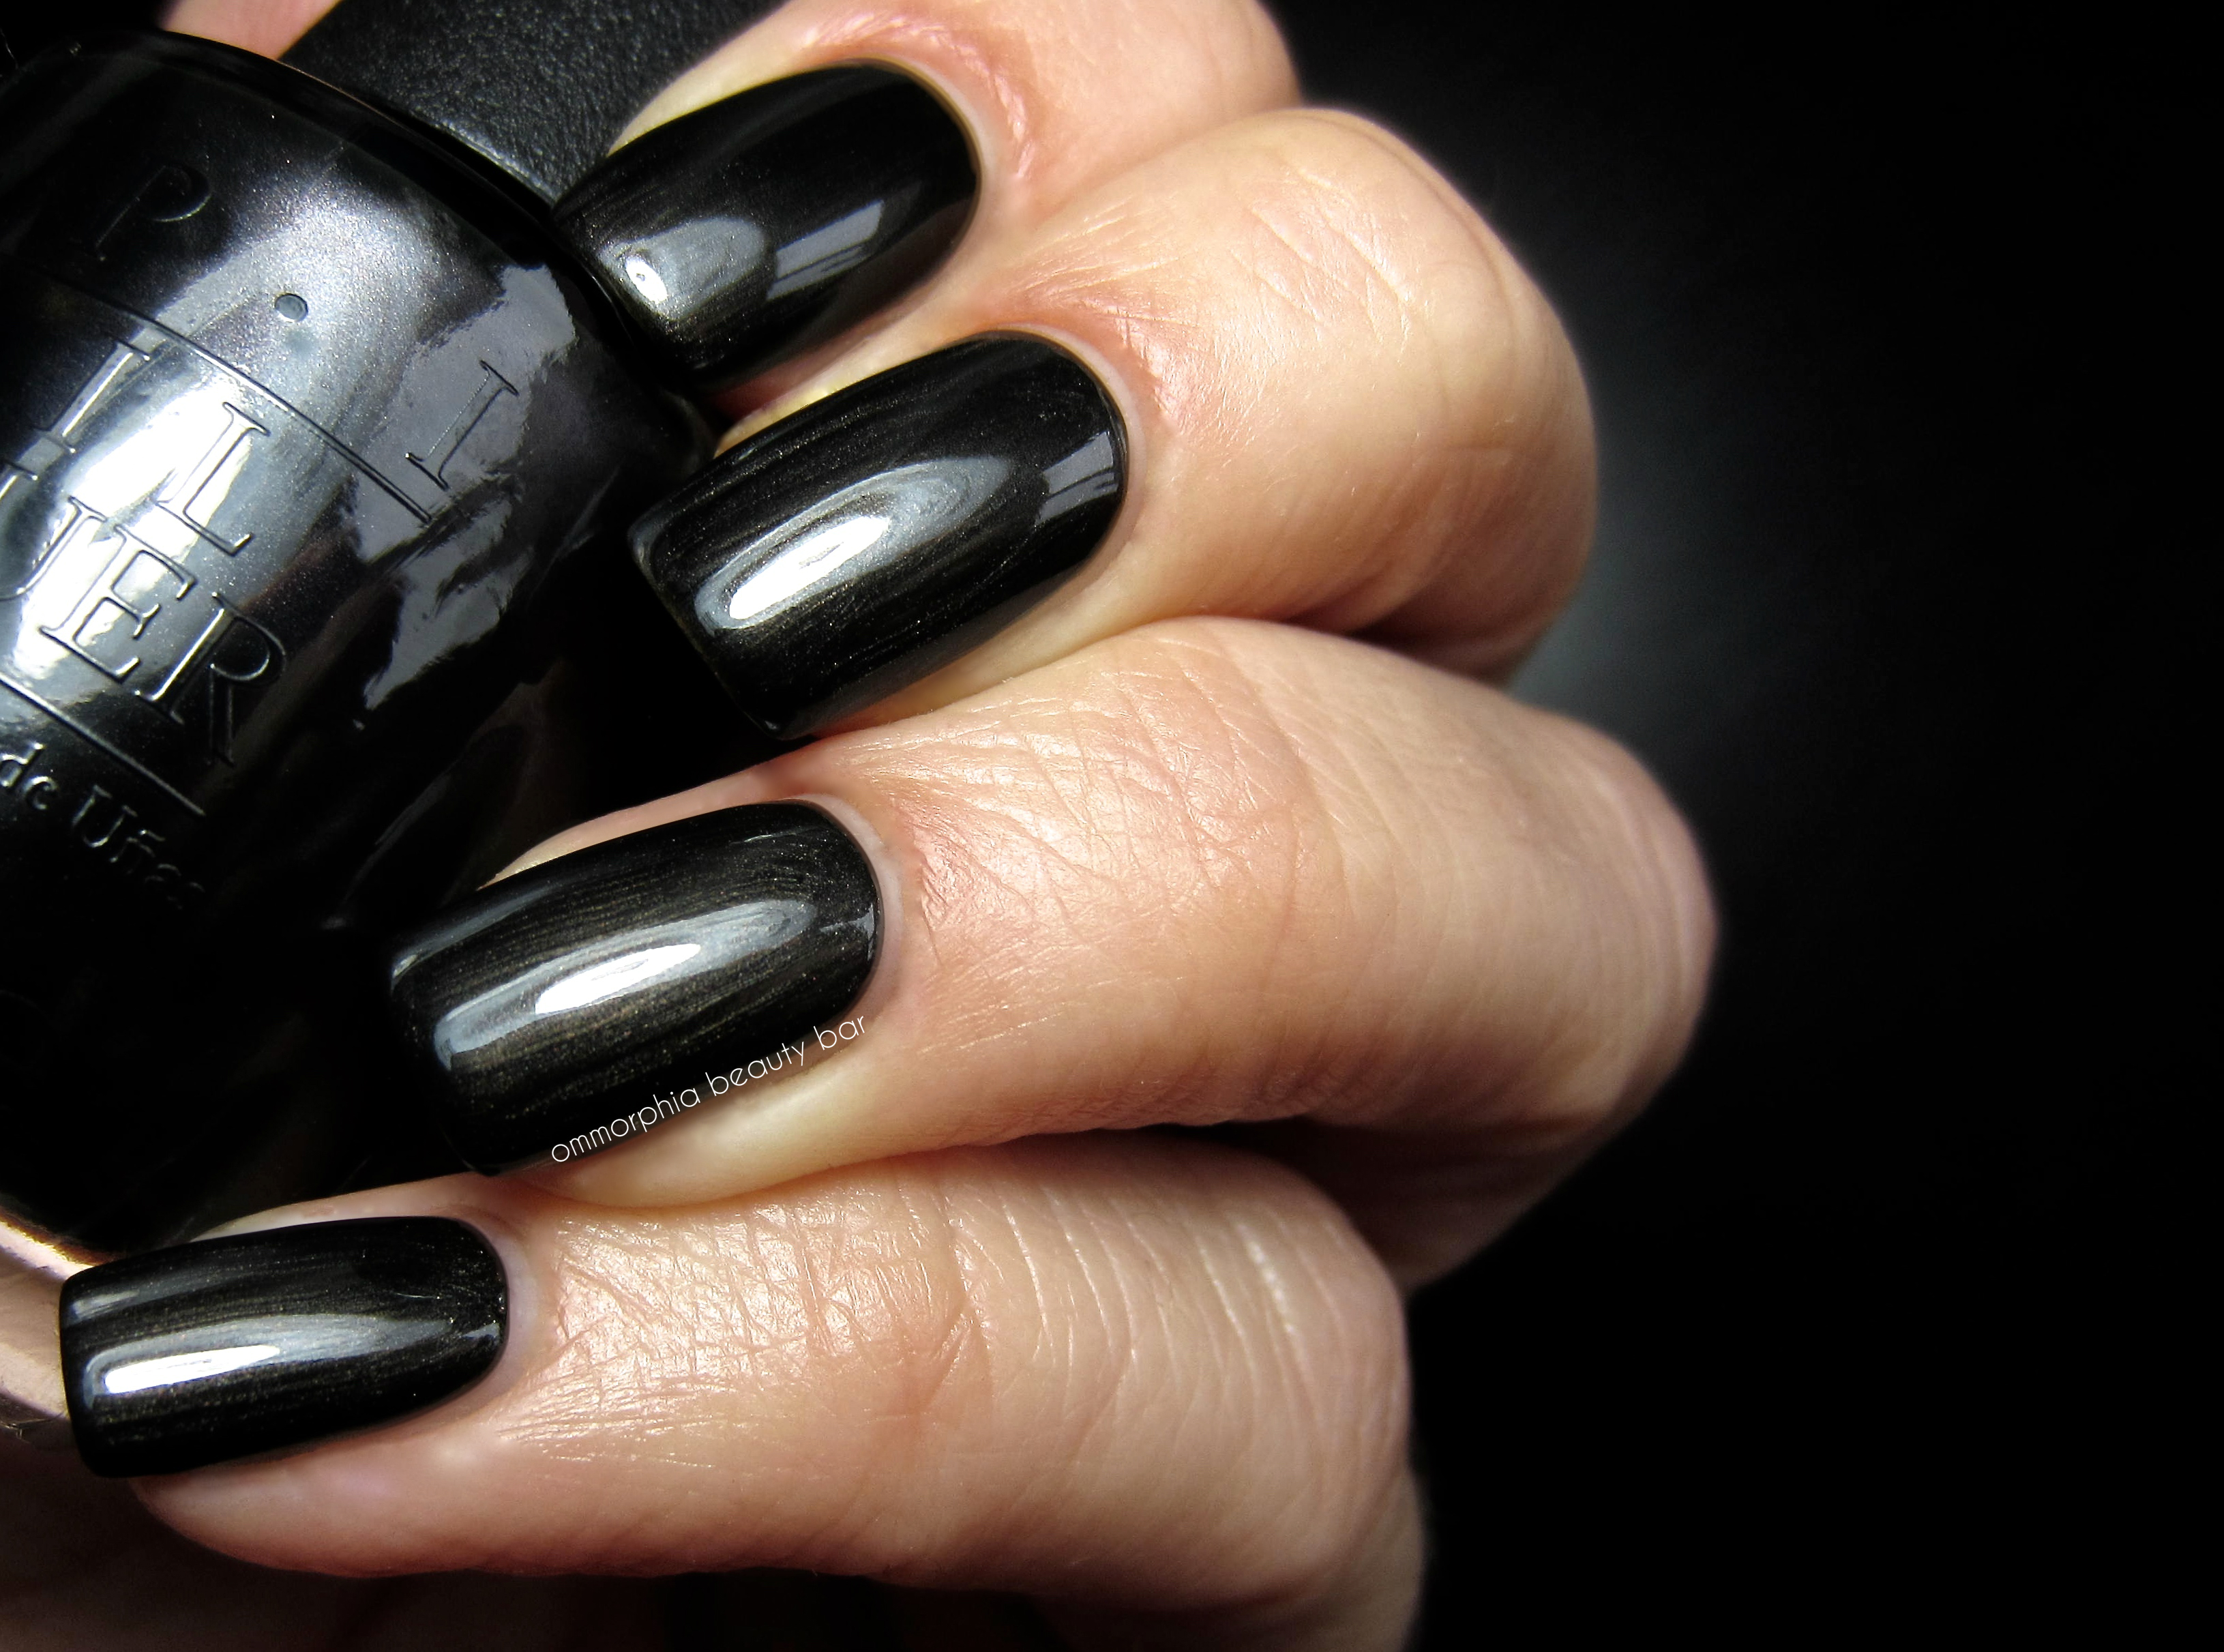 Opi Nail Polish Queen Of The Road - To Bend Light